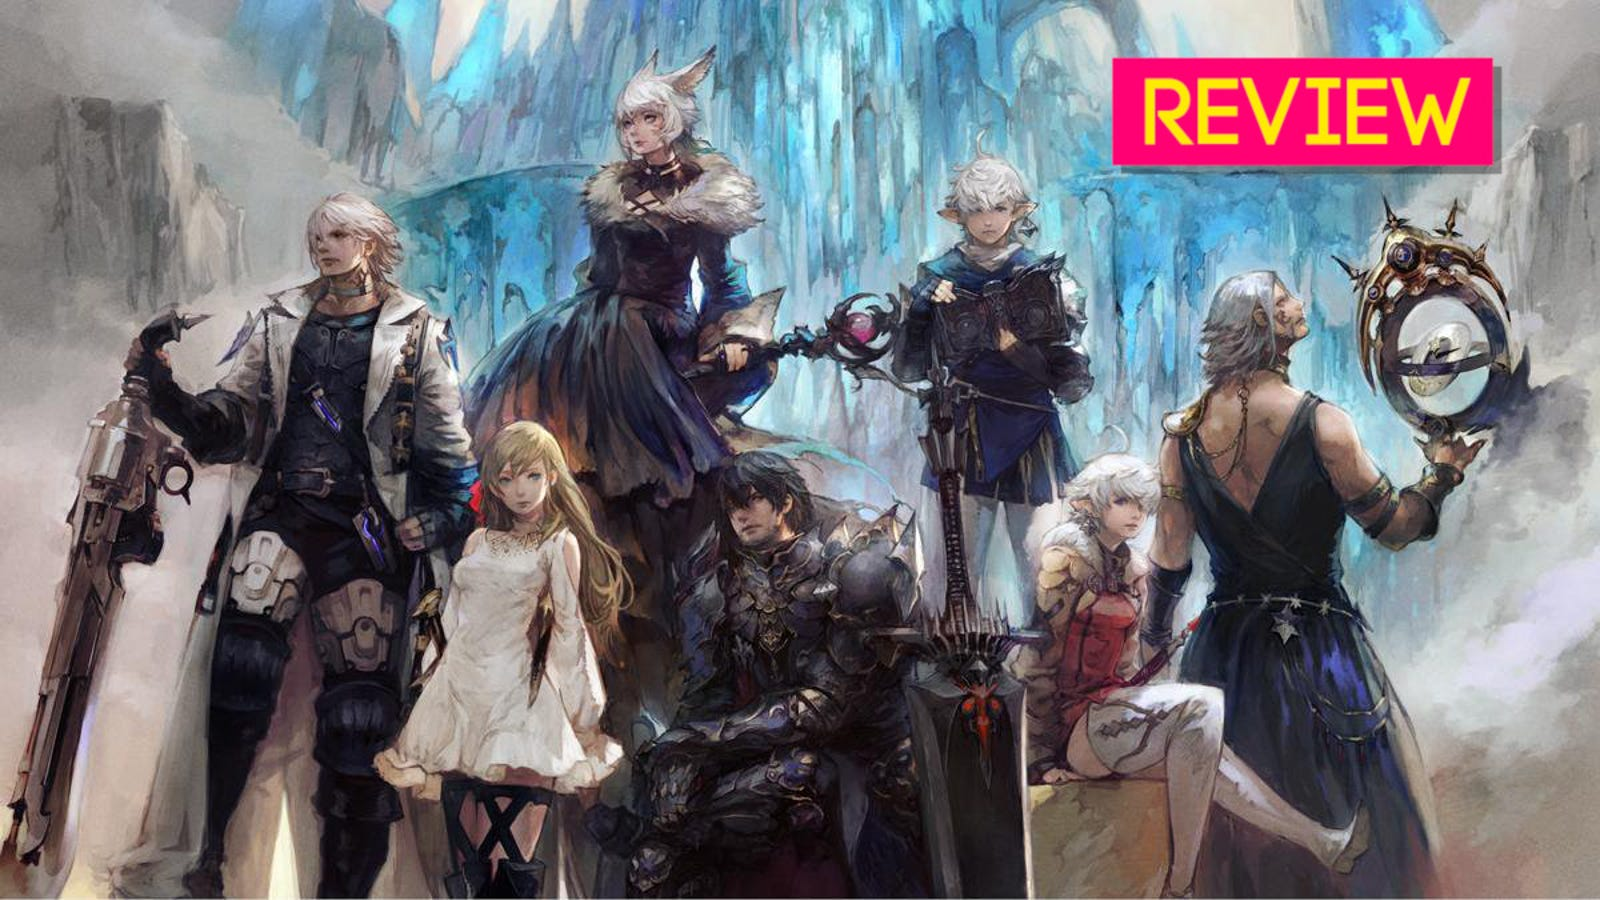 Final Fantasy XIV: Shadowbringers: The Kotaku Review